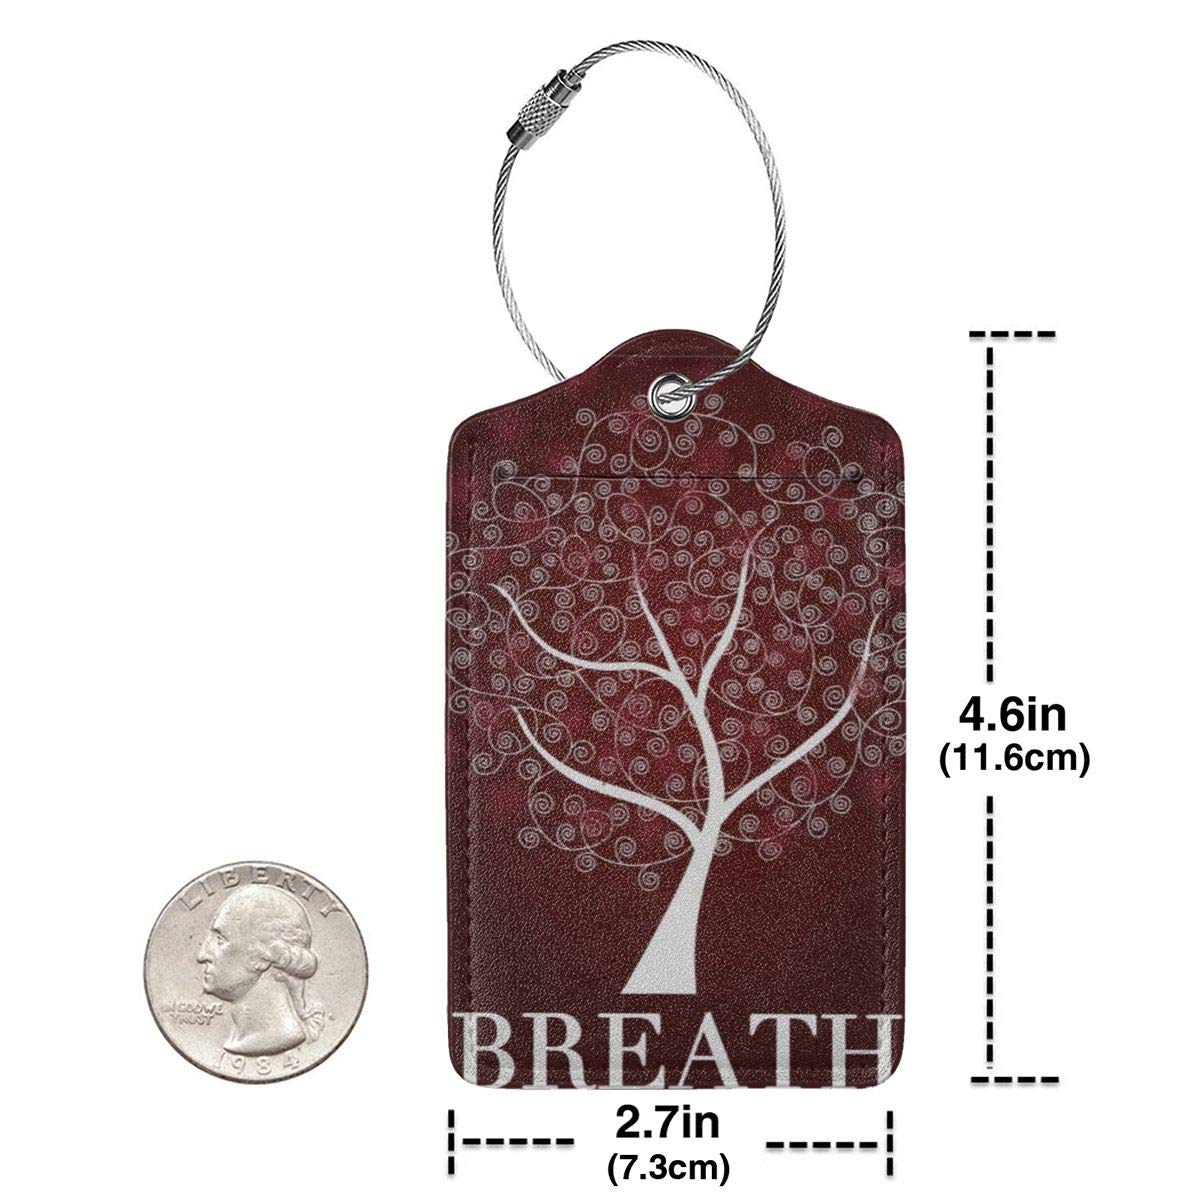 Breath Tree Branch Leaves Flowers Leather Luggage Tags Personalized Address Card With Privacy Flap